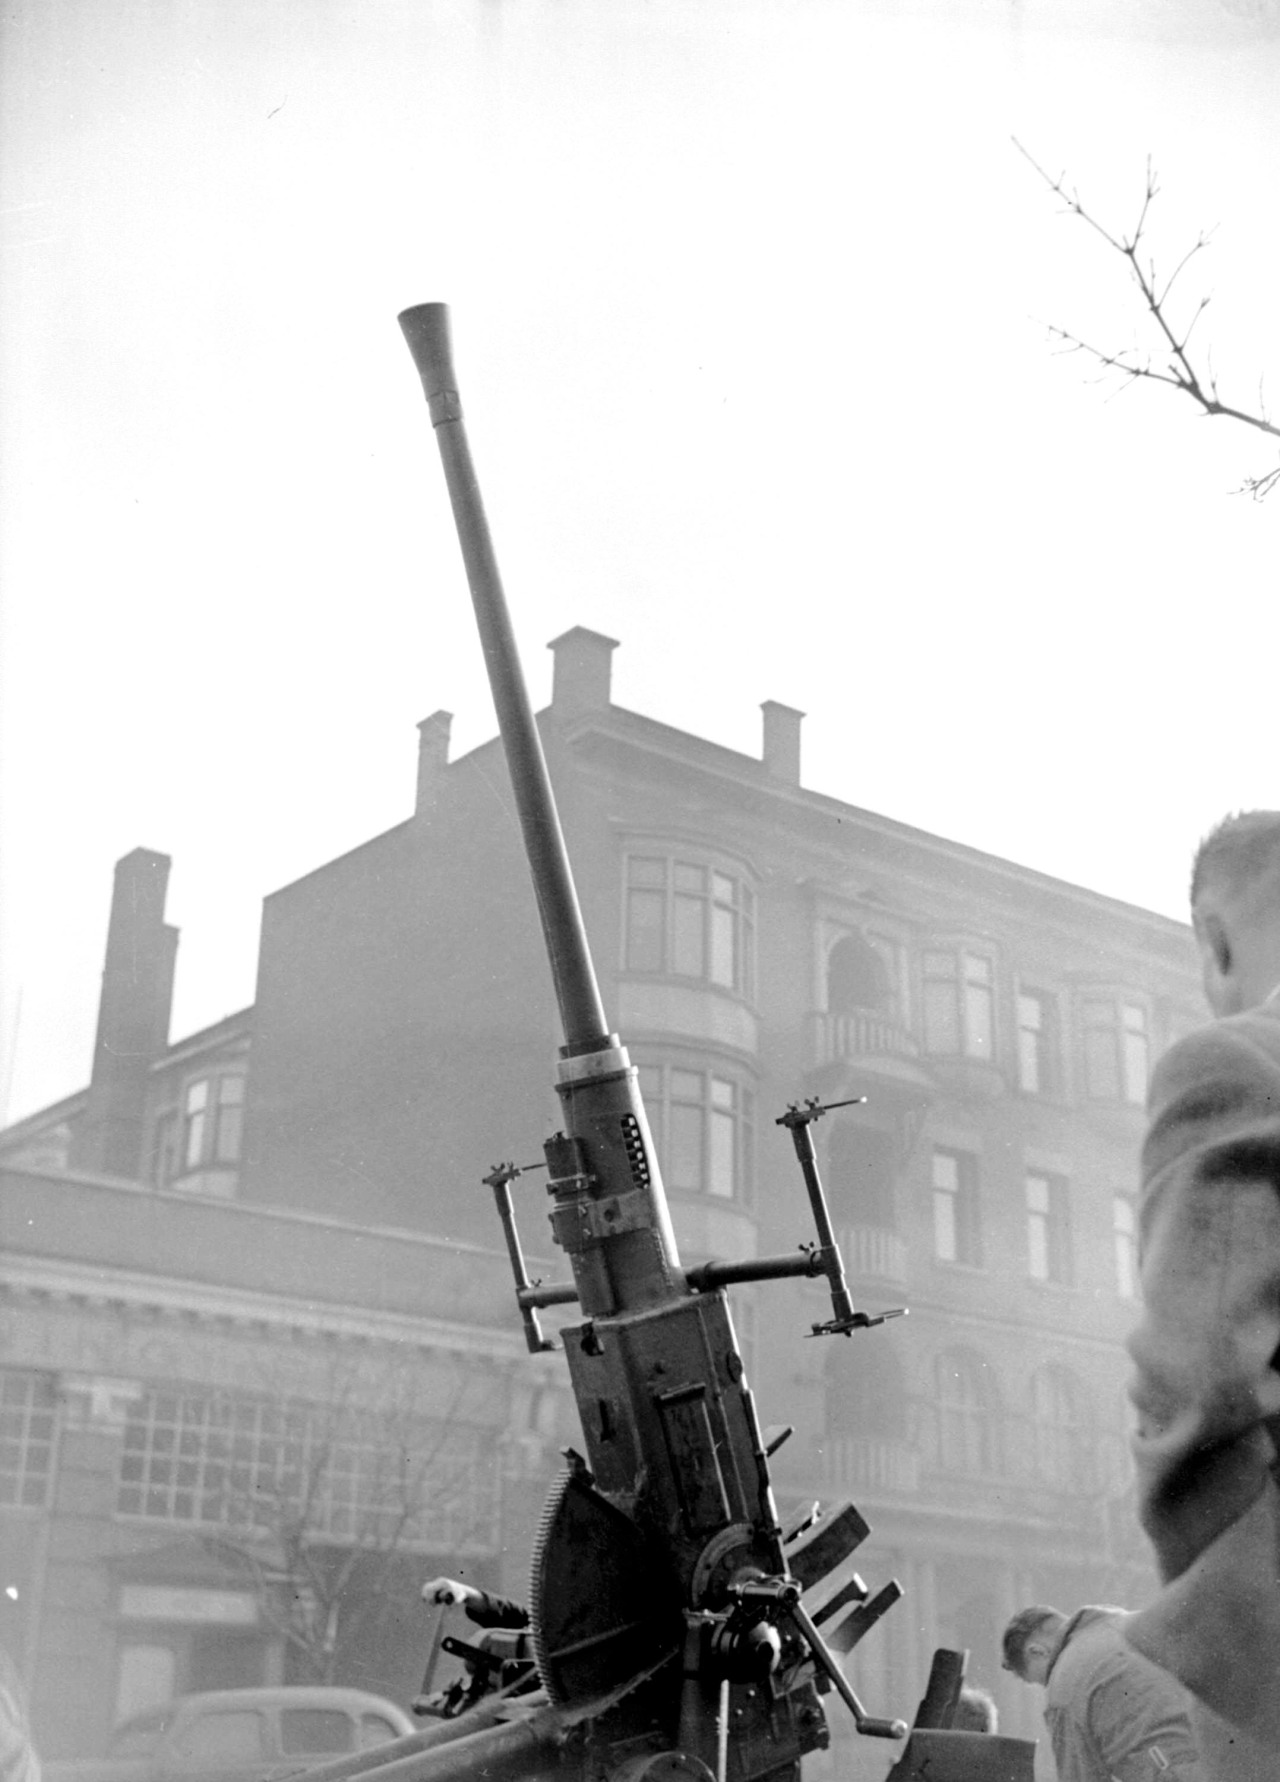 Anti-aircraft gun, Georgia Street, February 1942 Source: Photo by Jack Lindsay, City of Vancouver Archives #1184-26